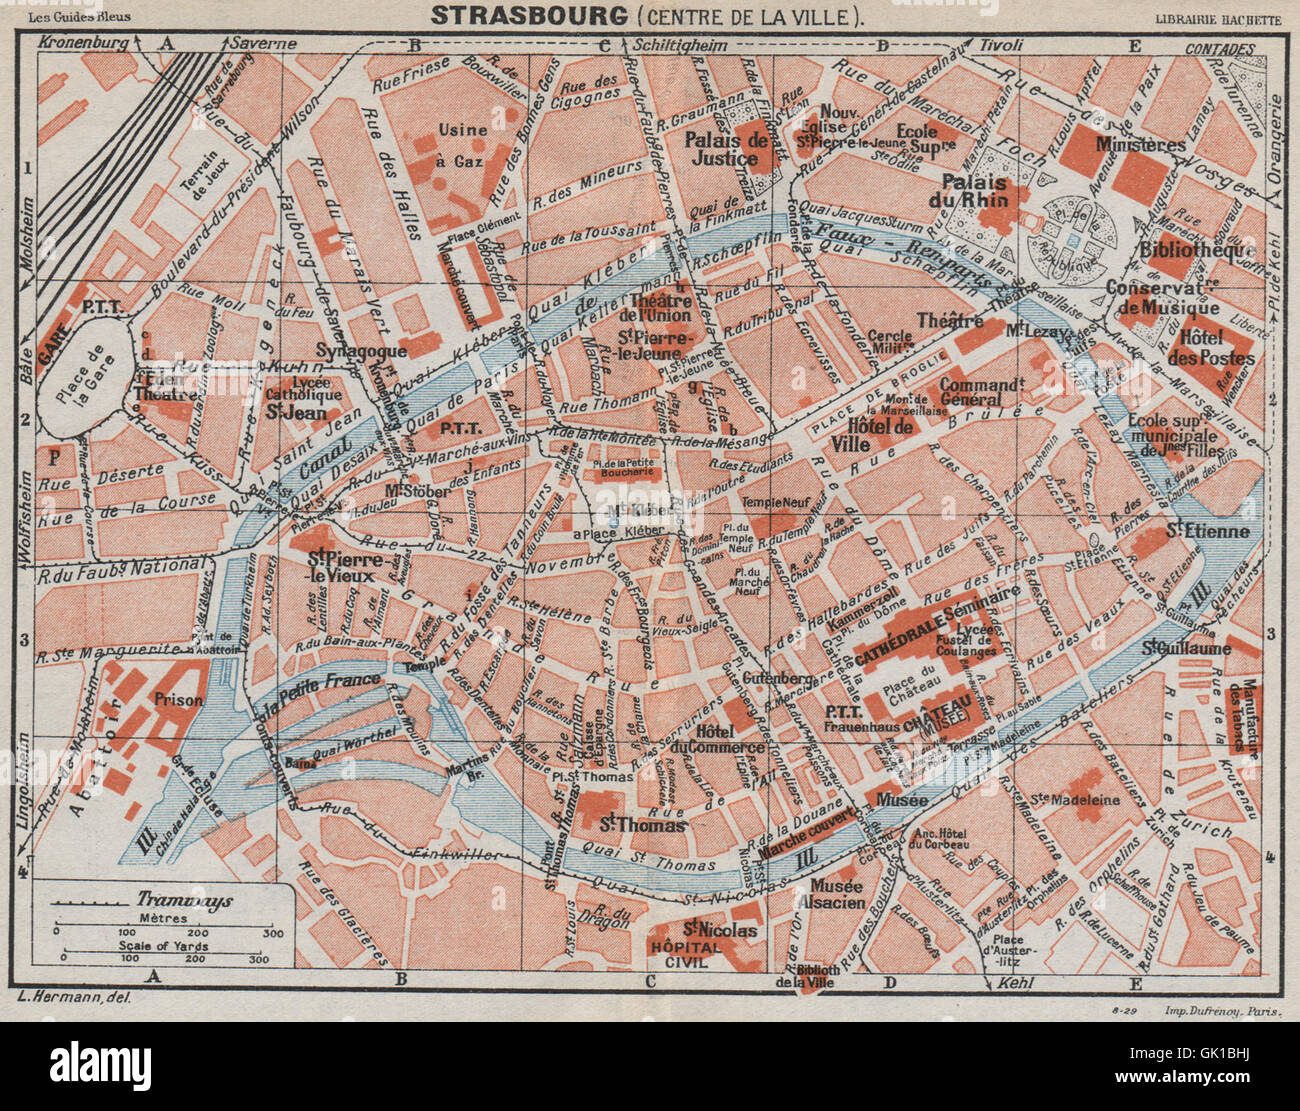 STRASBOURG. Centre de la ville. Vintage town city map plan carte ...